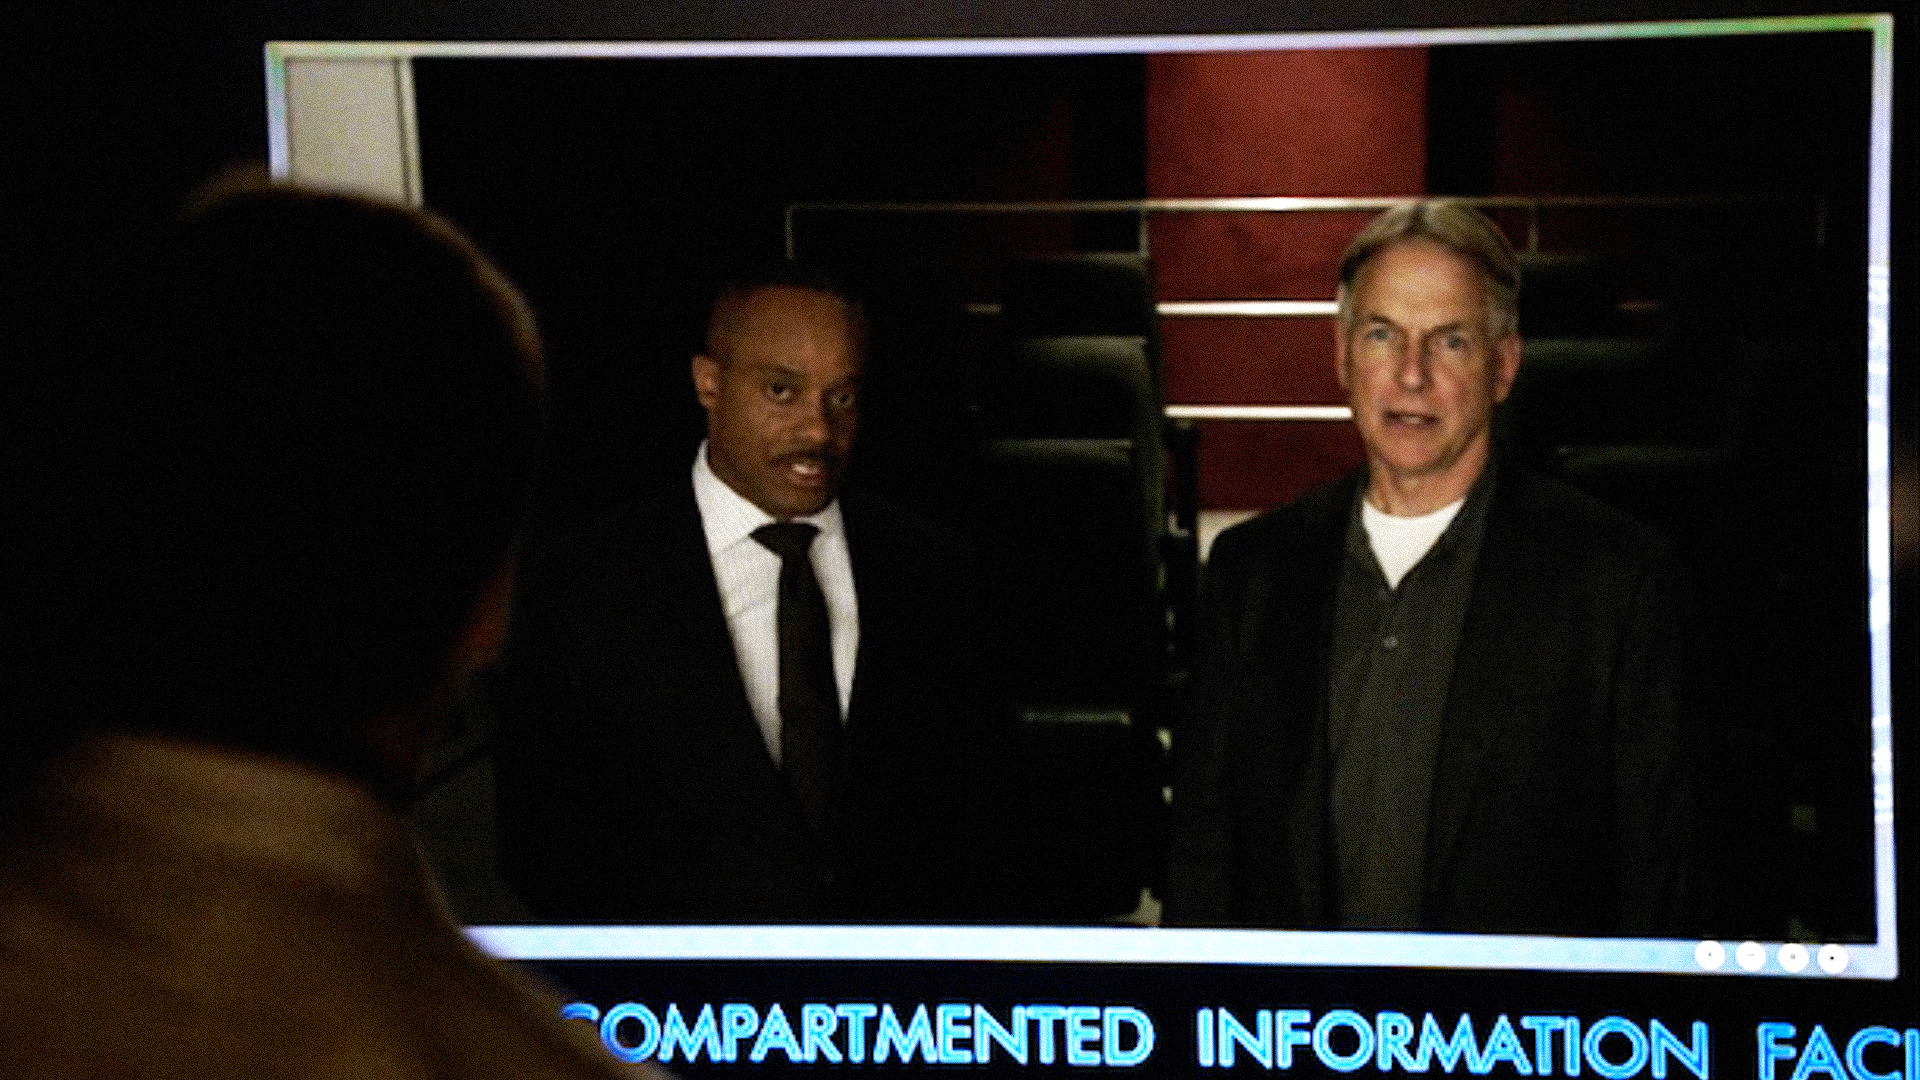 Leon Vance and Leroy Jethro Gibbs on NCIS: New Orleans